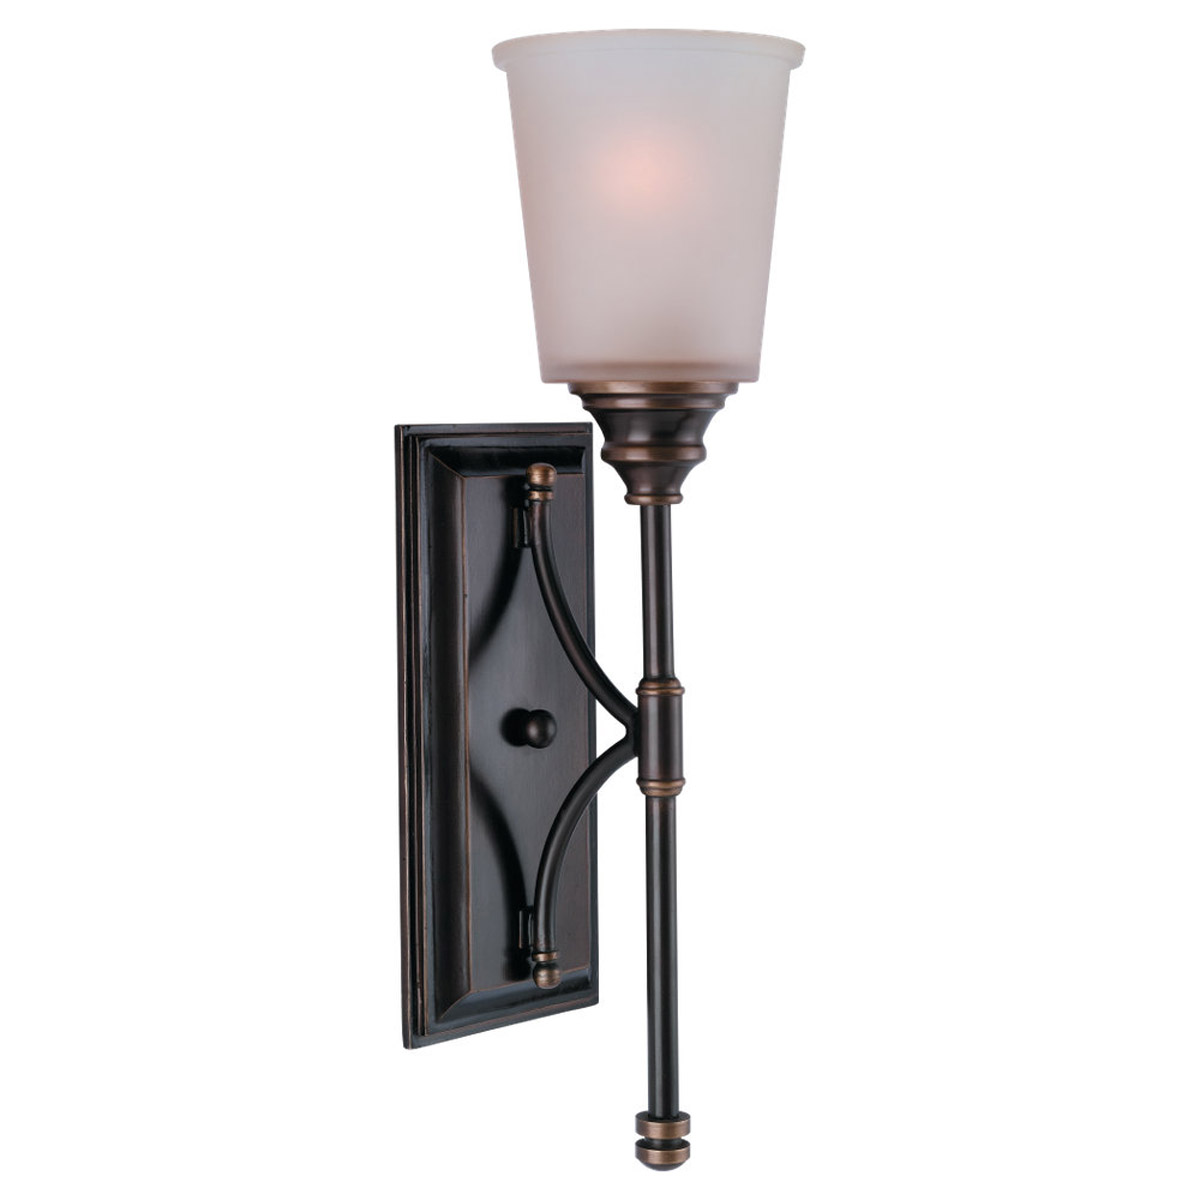 Sea Gull Lighting Warwick 1 Light Bath Vanity in Vintage Bronze 41330-825